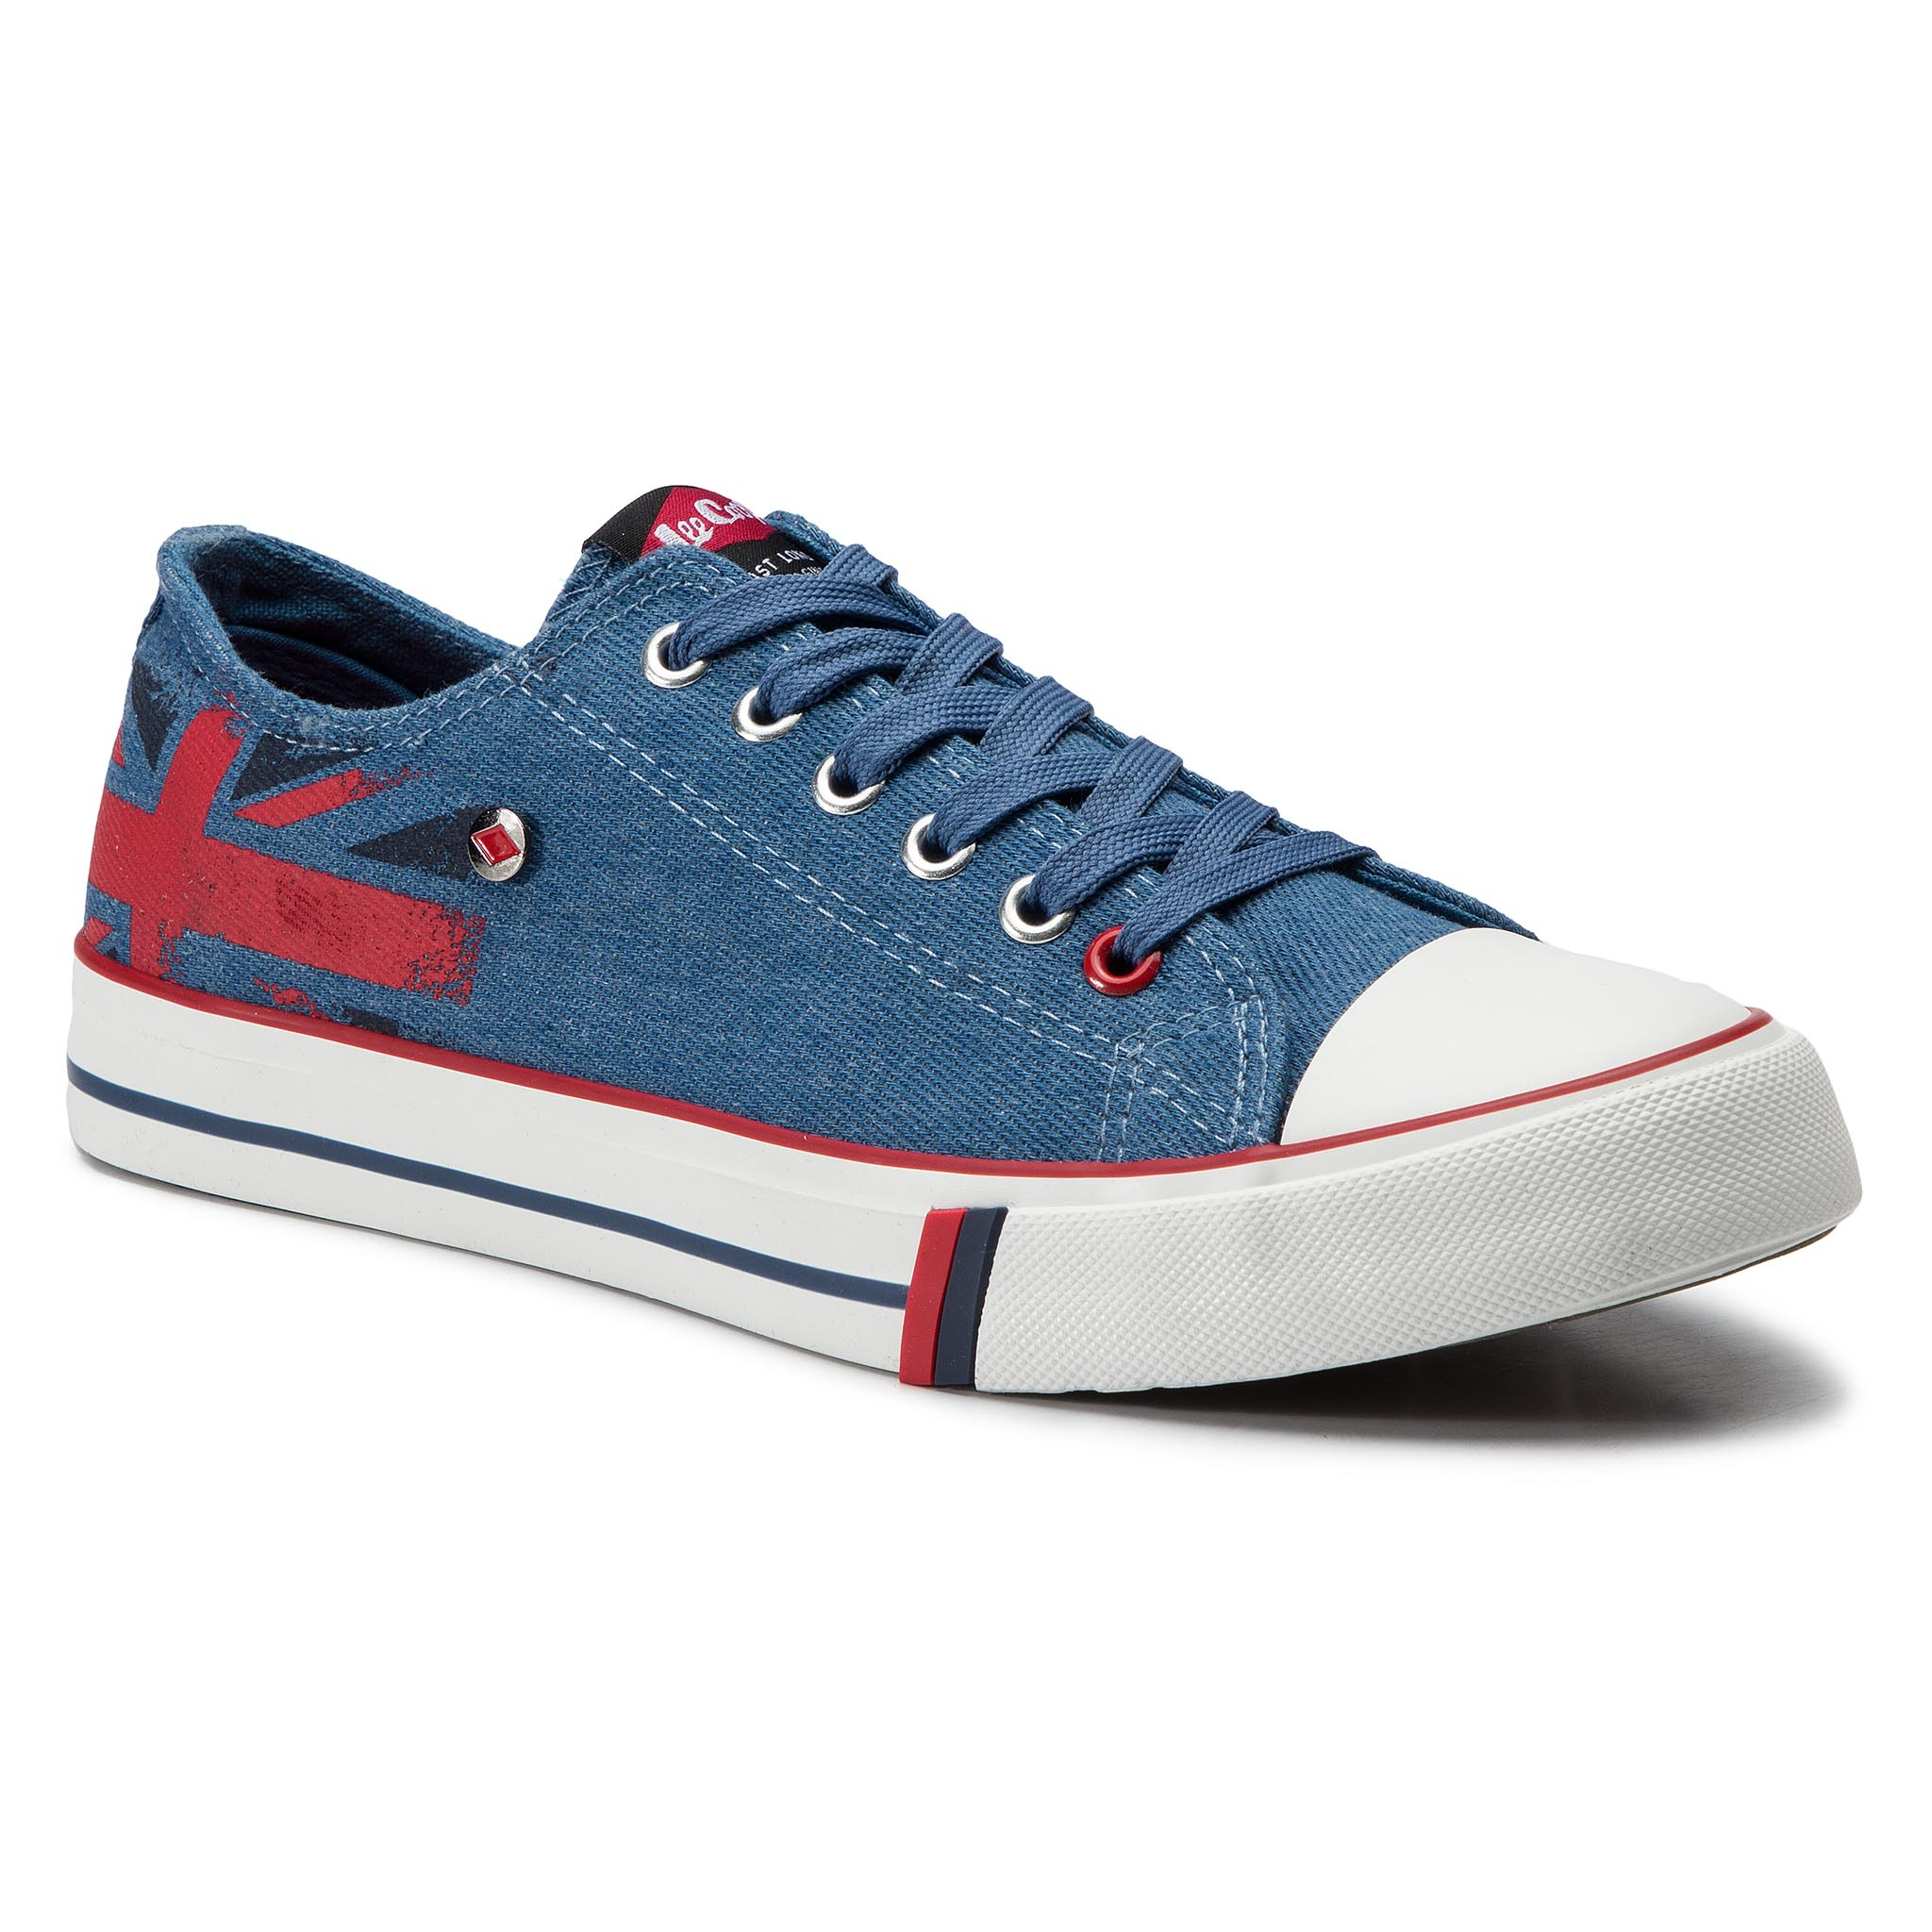 Lee Cooper Sneakers LEE COOPER - Low Cut 1 LCW-19-530-032 Jeans Blue